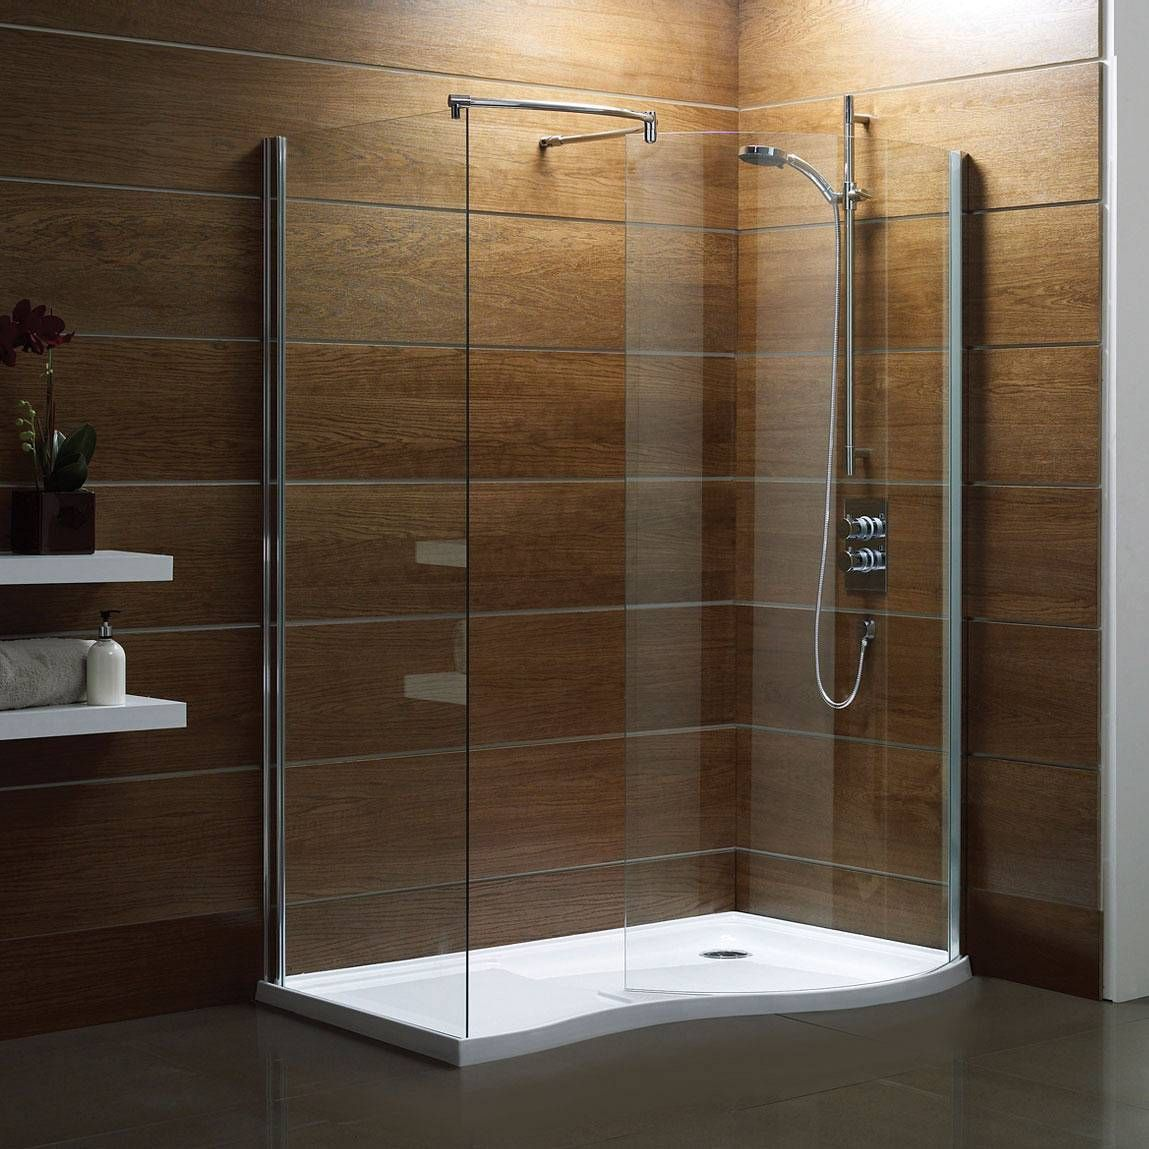 Victoria Plumb Showers >> Curved Walk in Shower Pack RH now only £299.00 from Victoria Plumb | Walk in shower enclosures ...